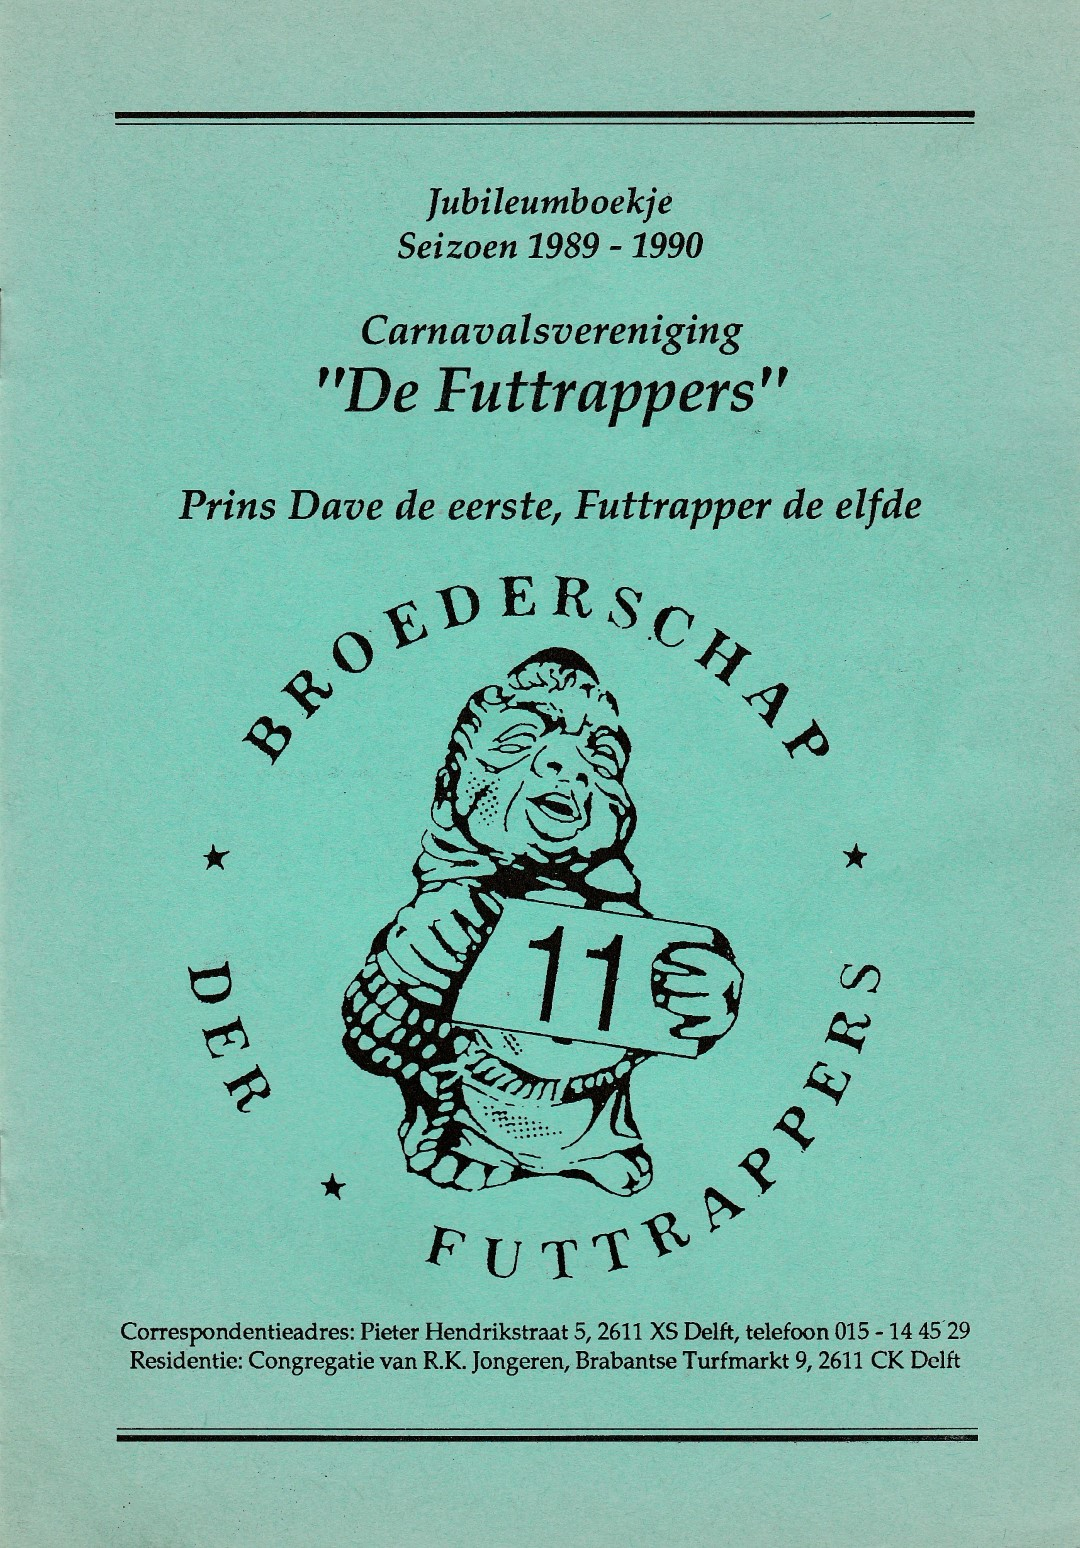 Futtrappers jaarboek